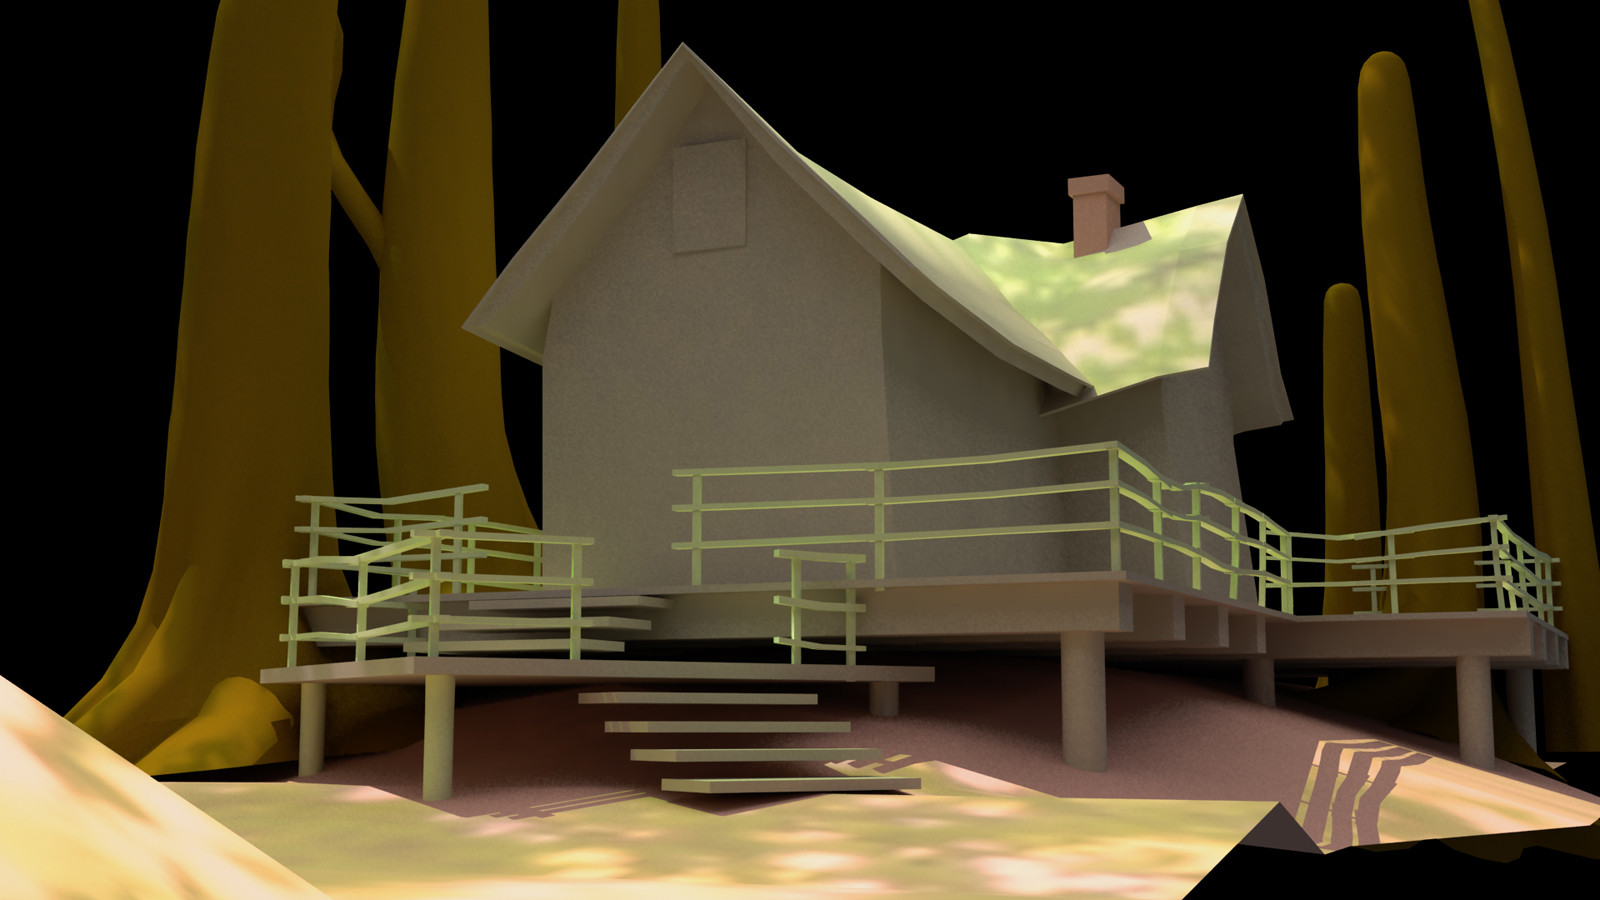 Quentin mabille cabin3d